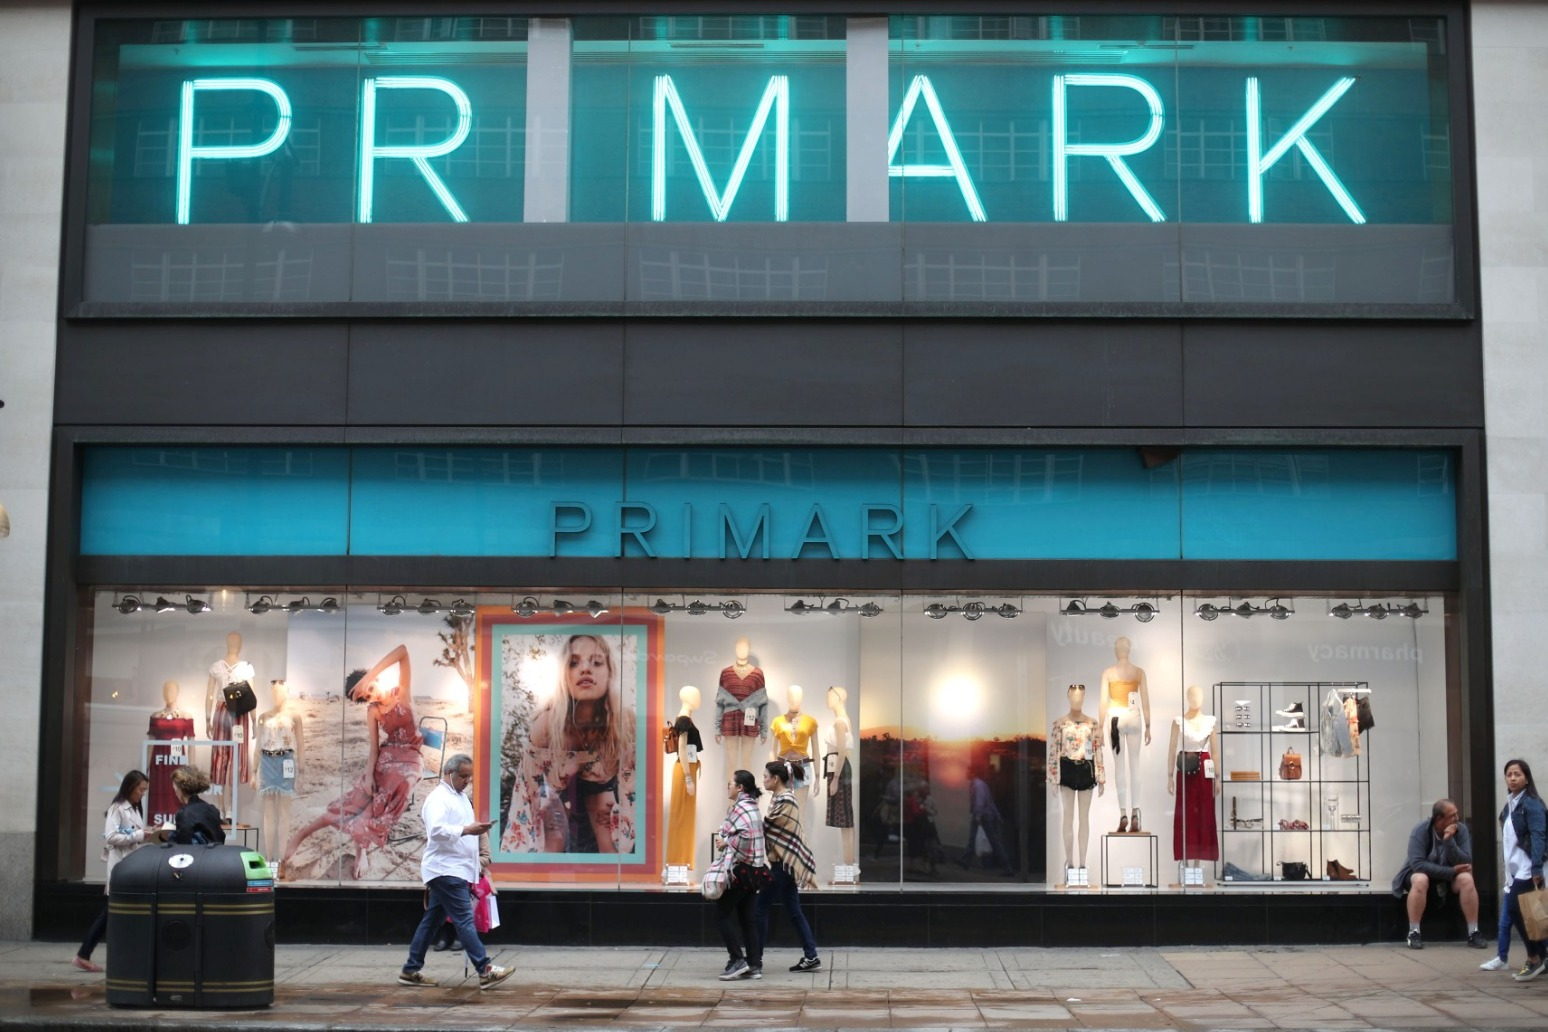 Primark pledges to make sustainable clothing 'affordable to all'